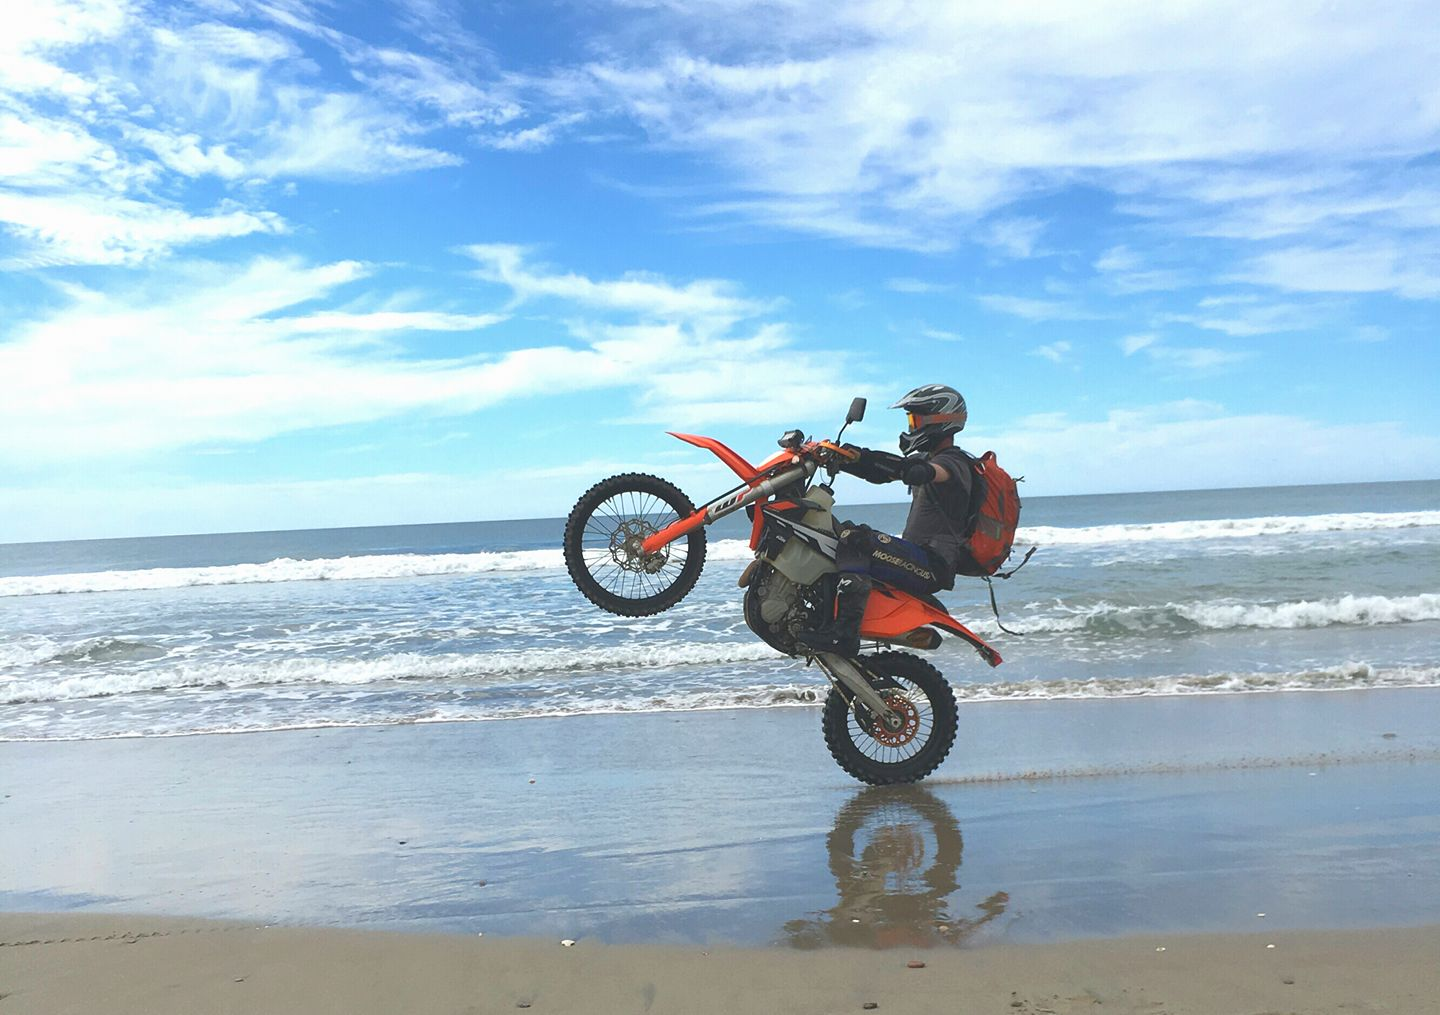 KTM riding on beach